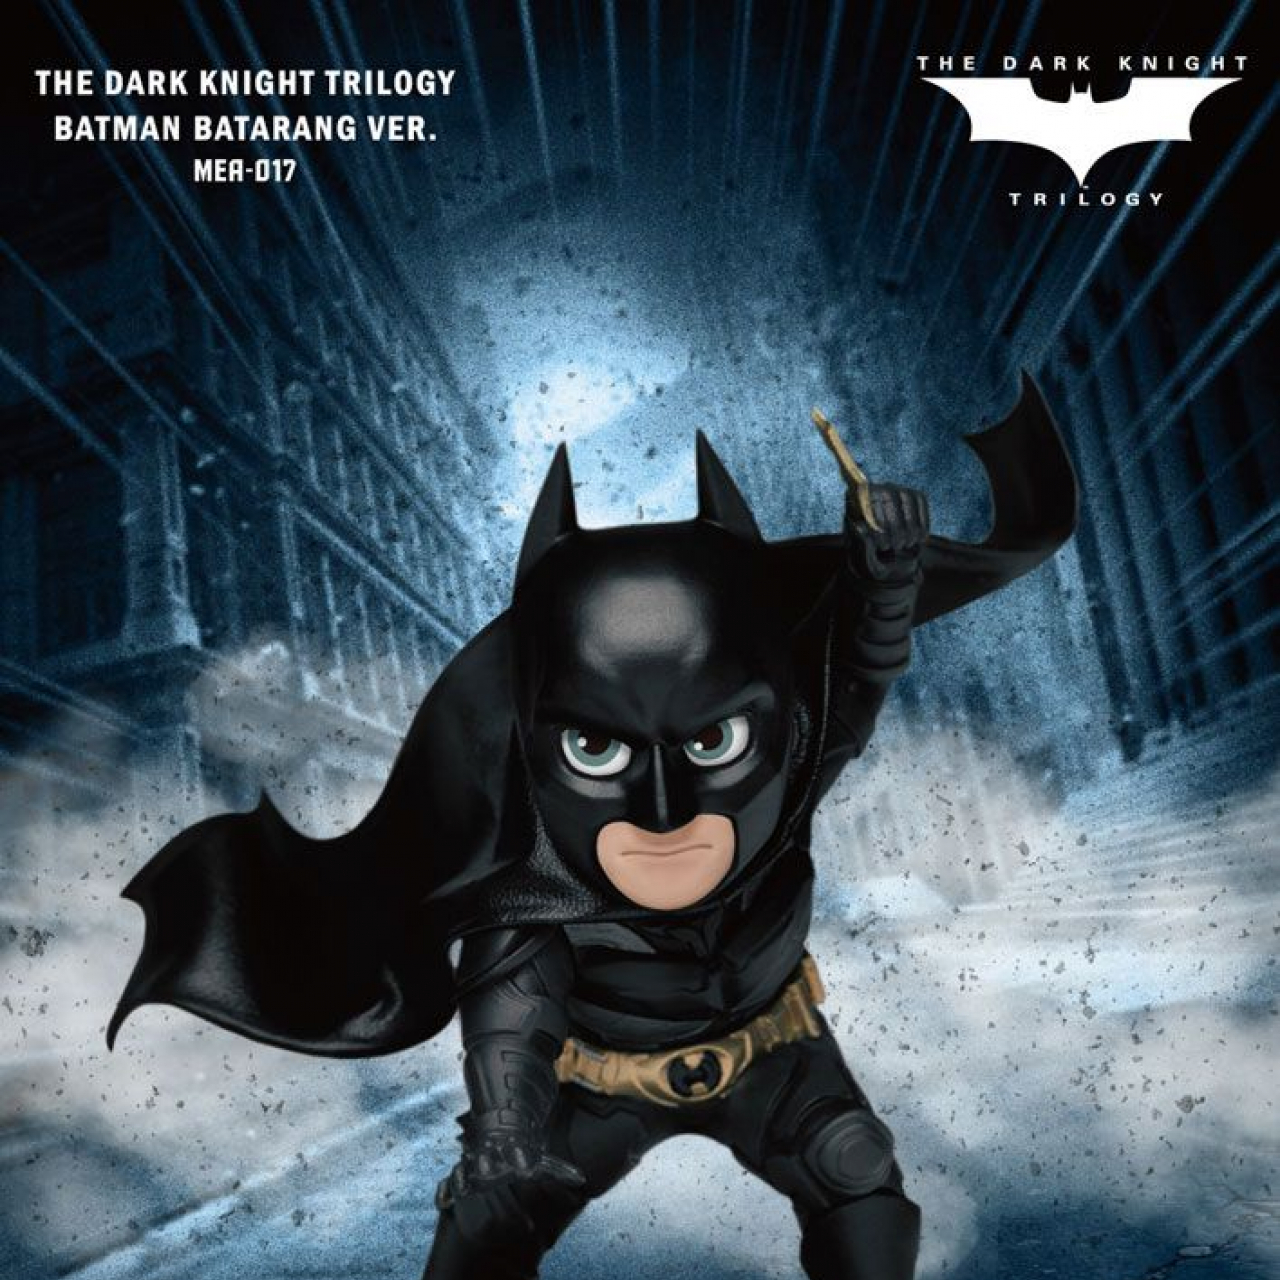 Dark Knight Trilogy Mini Egg Attack Figure Batman Batarang Ver. 8 cm